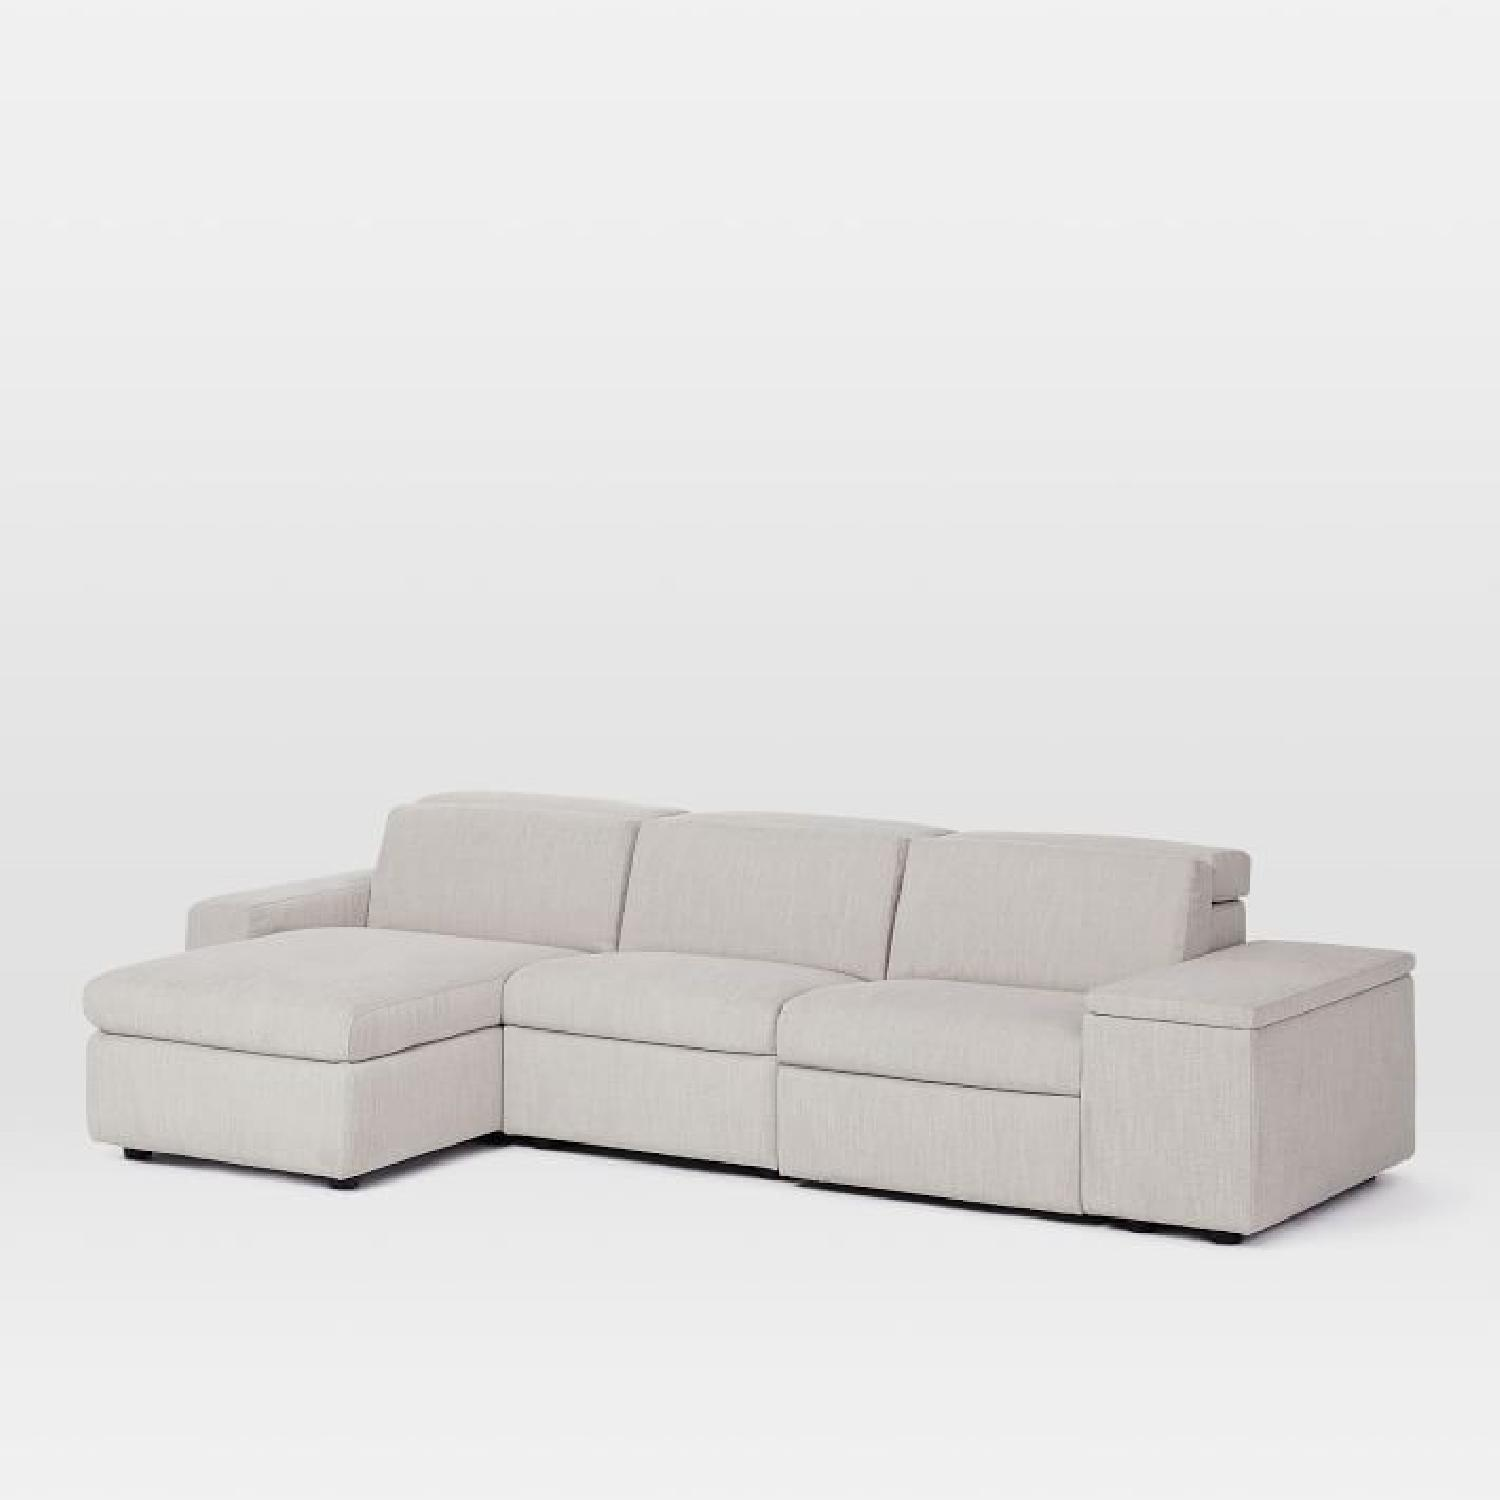 Excellent West Elm Enzo Electric Reclining 3 Sectional Sofa W Chaise Pabps2019 Chair Design Images Pabps2019Com